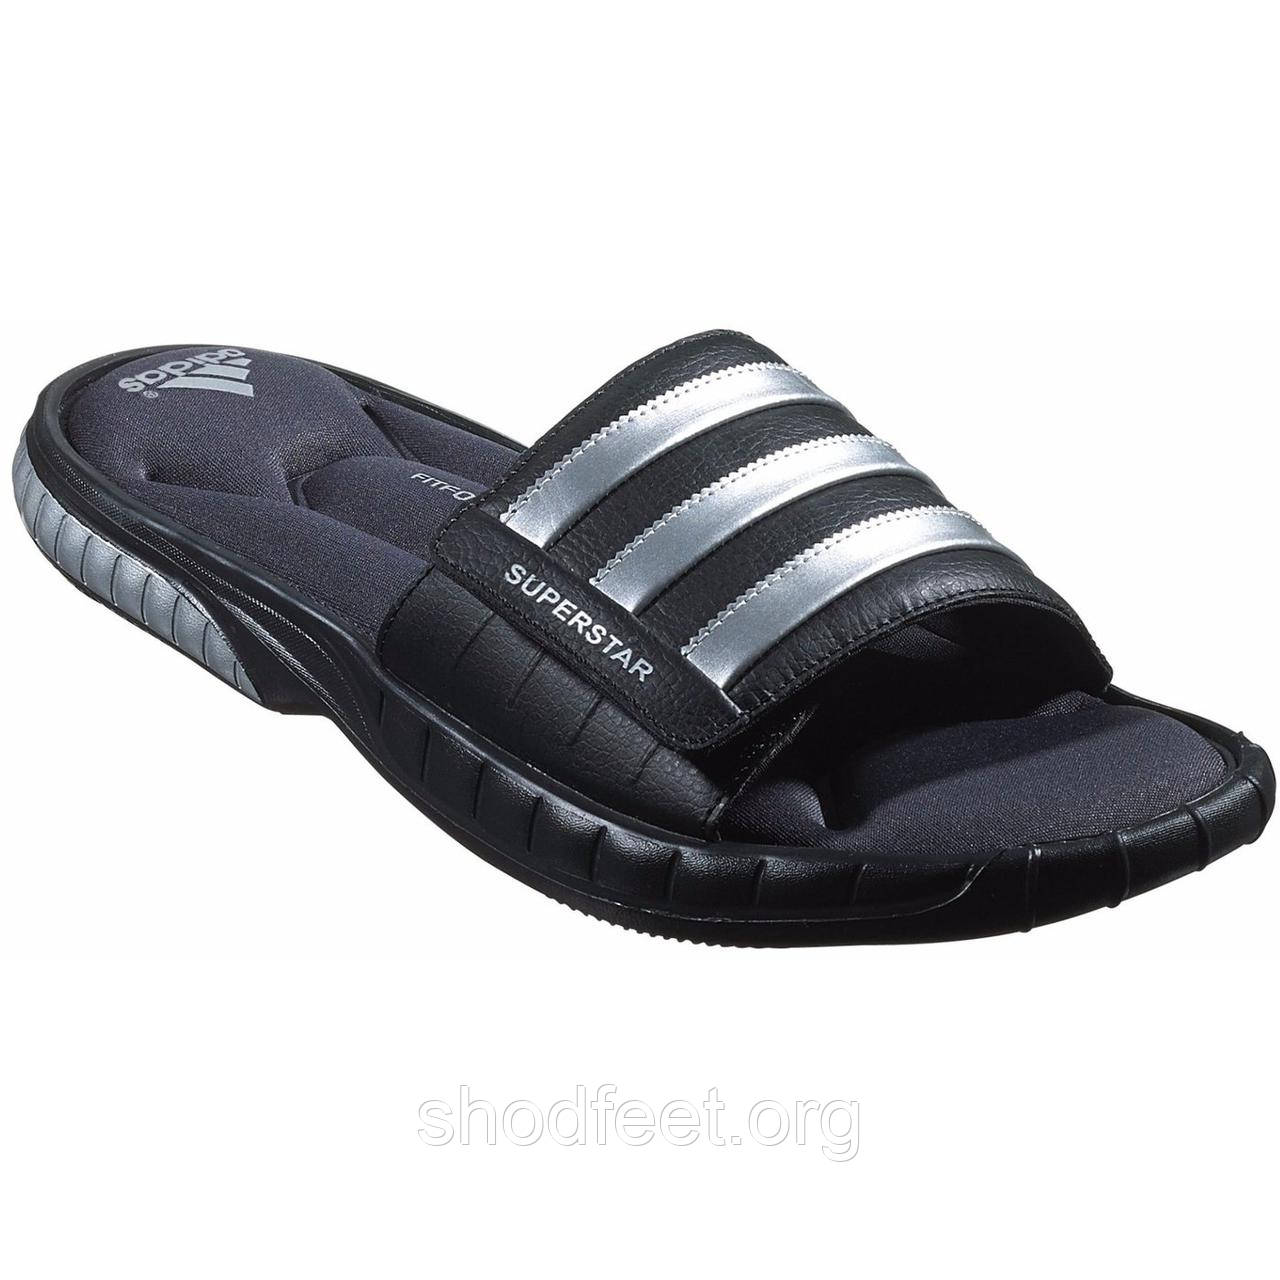 8a50c8ca7174 Мужские шлепанцы Adidas Men s Superstar 3G Slide Sandal Black - ShodFeet в  Харькове